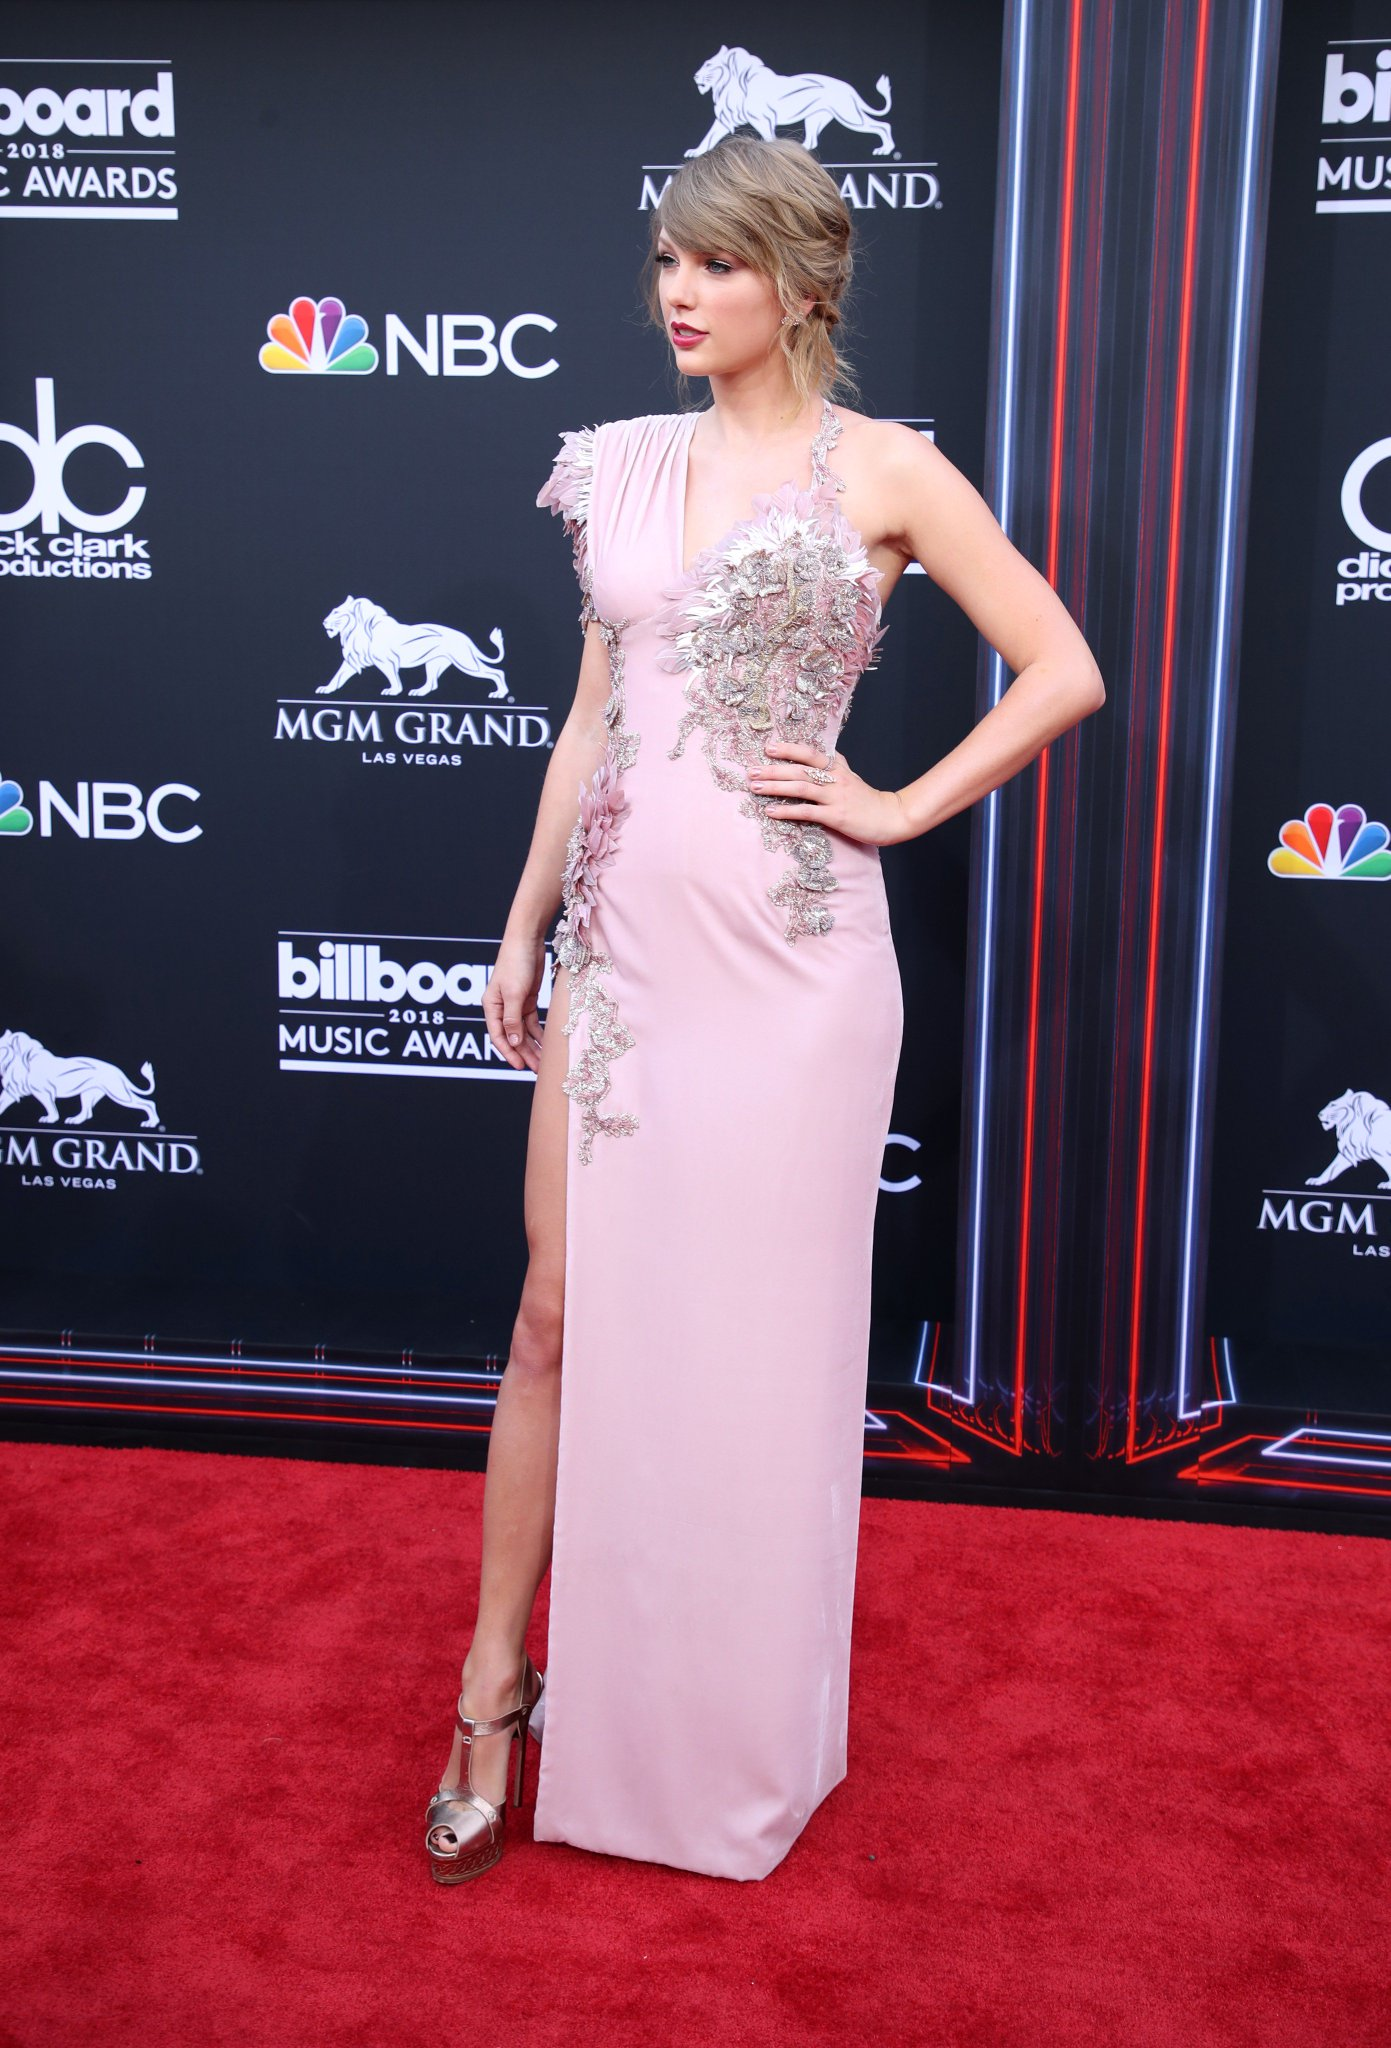 .@taylorswift13's full #BBMAs red carpet look. https://t.co/Rkv0D6HaMi https://t.co/CrukypvDMl